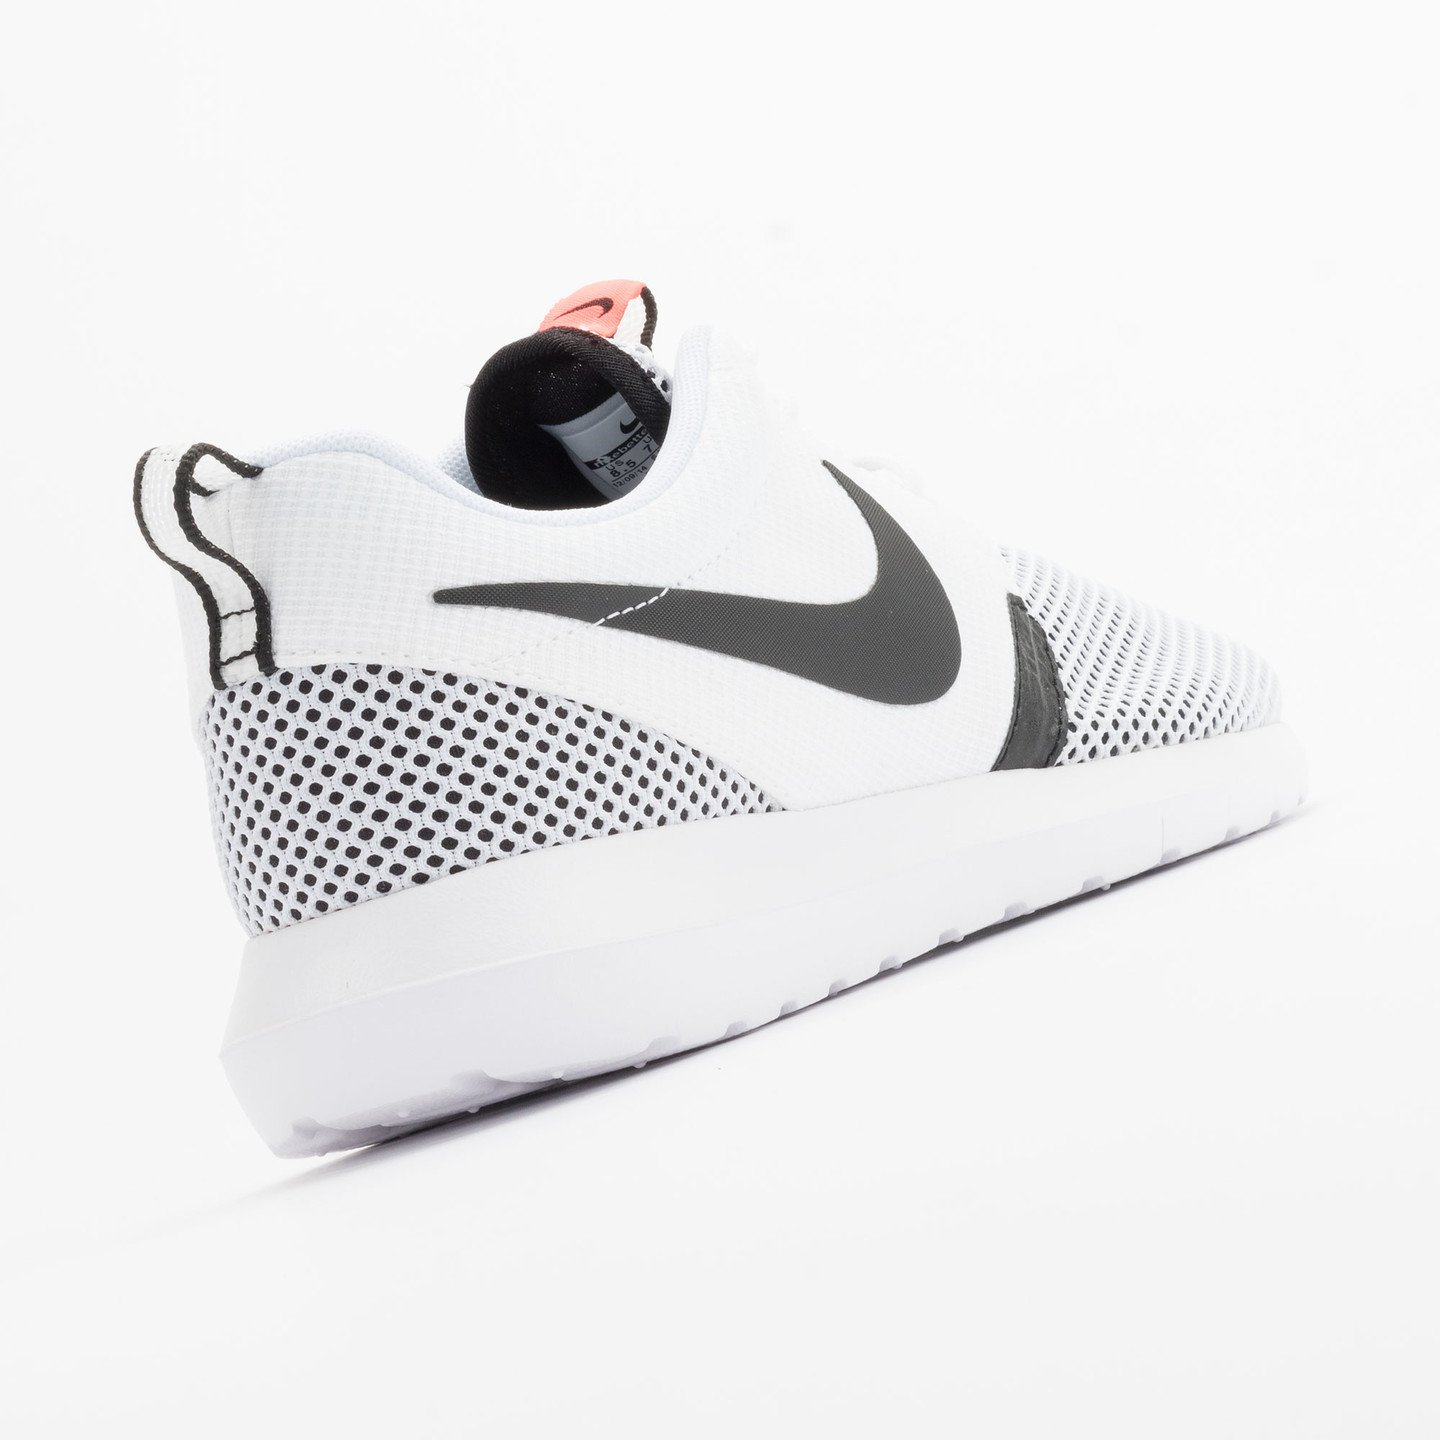 Nike Rosherun NM BR White/White-Black-Hot Lava 644425-100-45.5